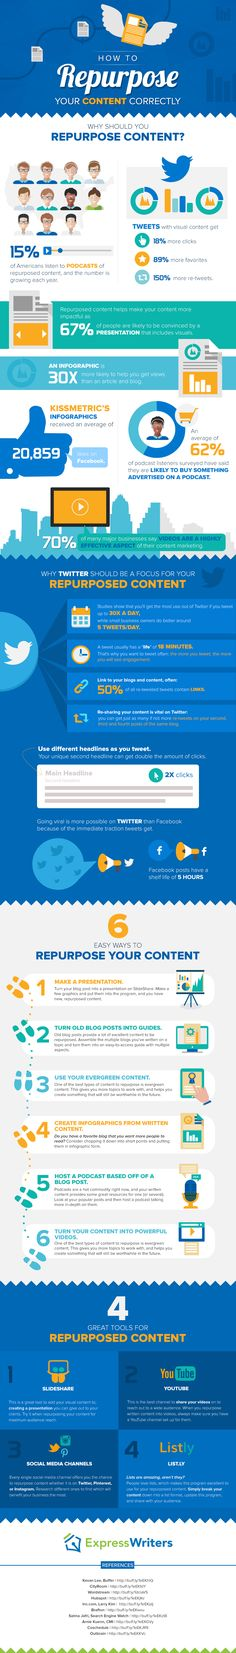 How To Reuse and Recycle Your #Content To Attract New Visitors (Infographic) #socialmedia www.rubendelaosa.com @rubendelaosa